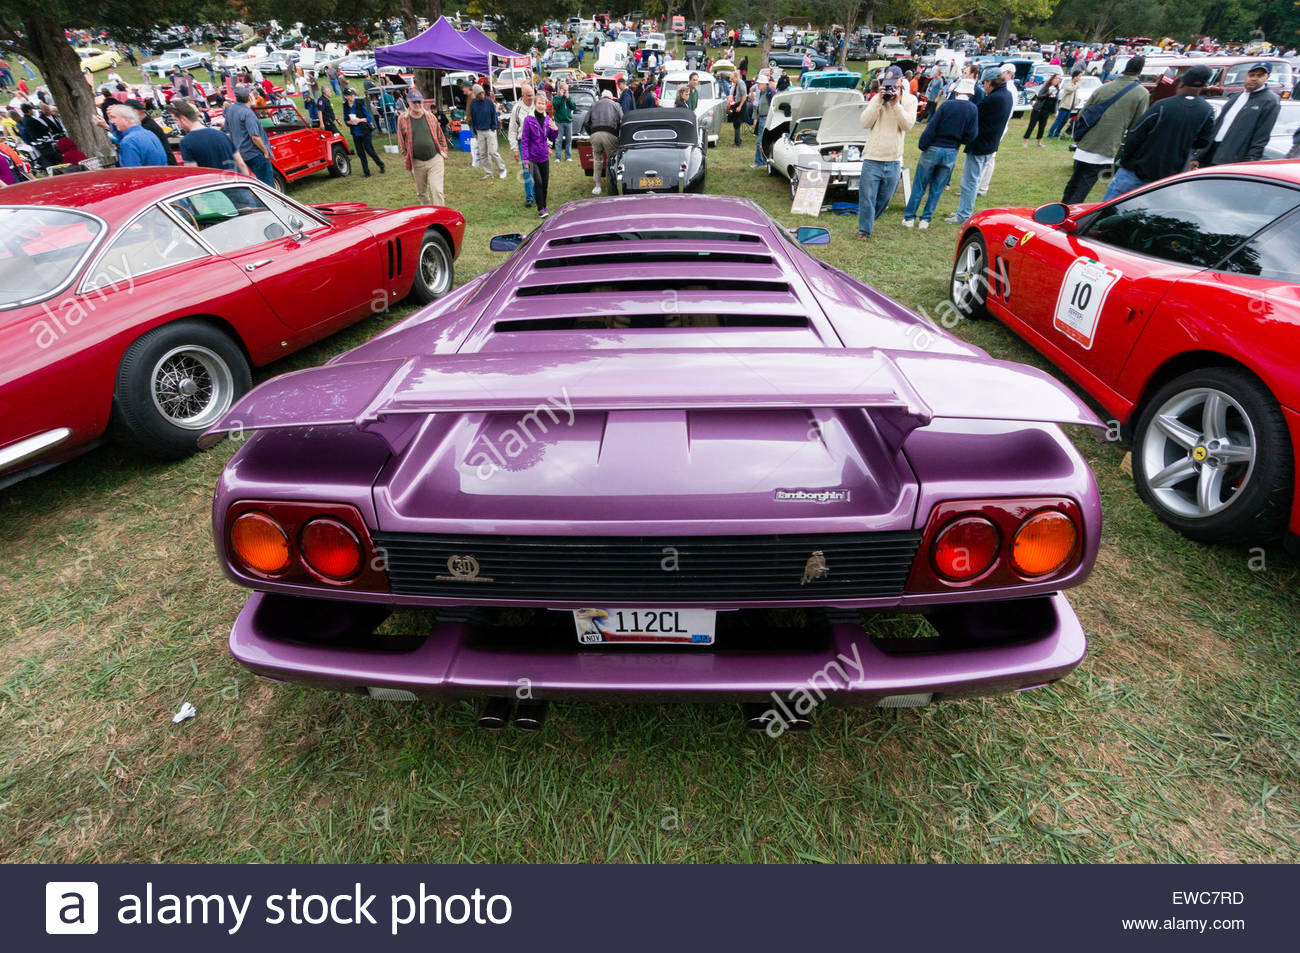 Lamborghini Diablo 30 at the 2014 Rockville Antique & Classic Car ...